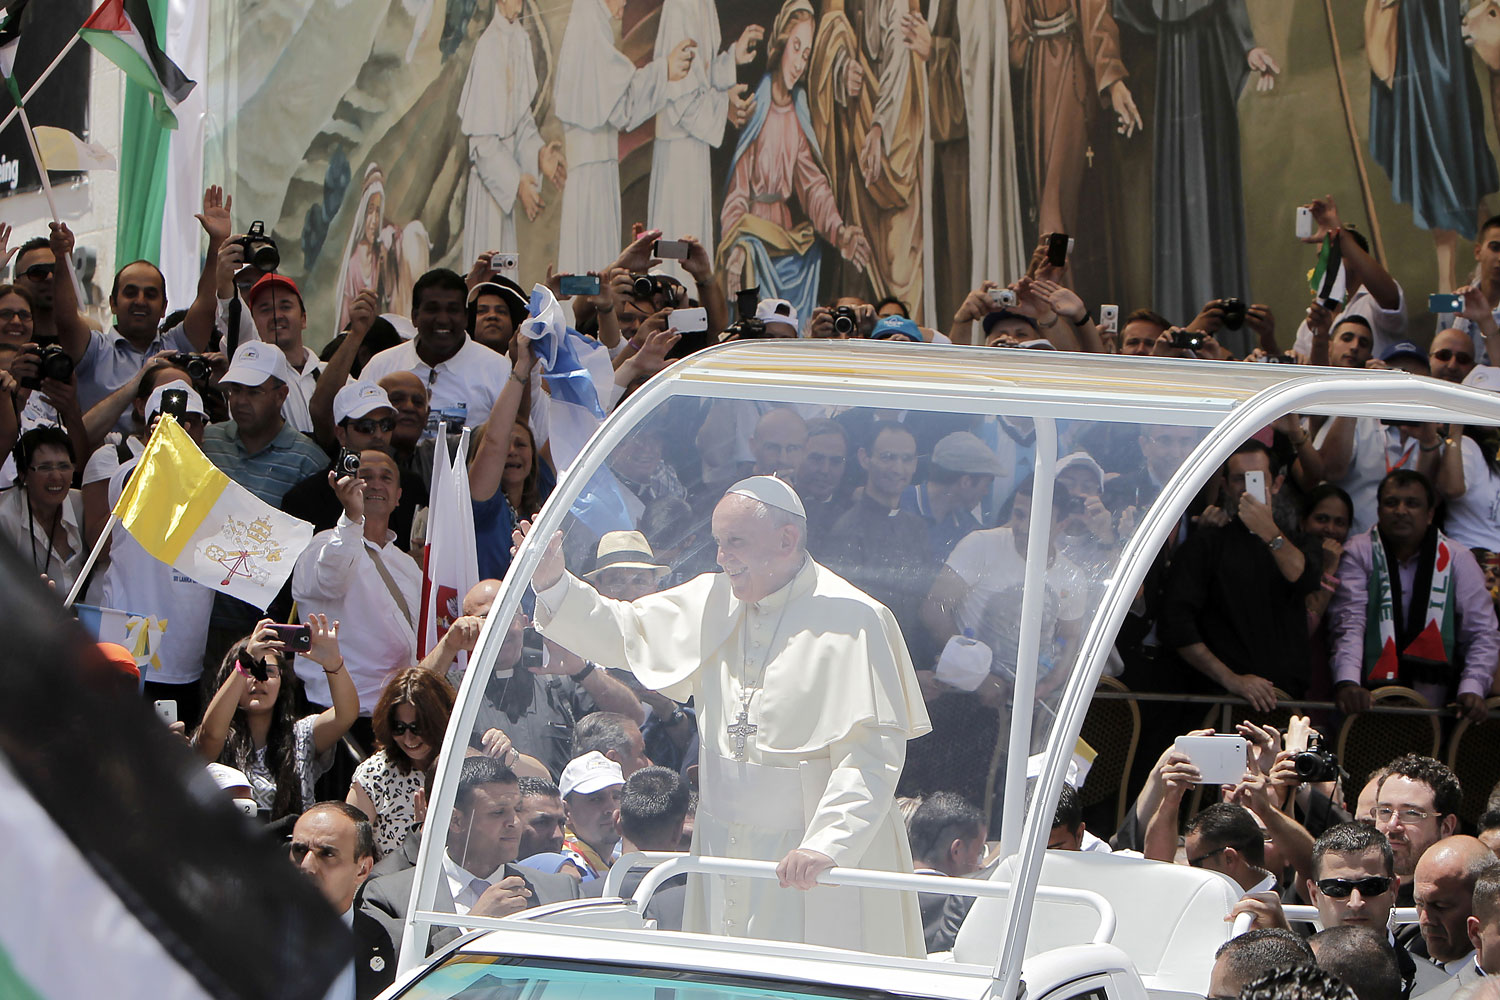 Pope Francis waves to the crowd, from his pope-mobile, as he leaves the Manger Square after presiding over an open-air mass on May 25, 2014, outside the Church of the Nativity in the West Bank Biblical town of Bethlehem.